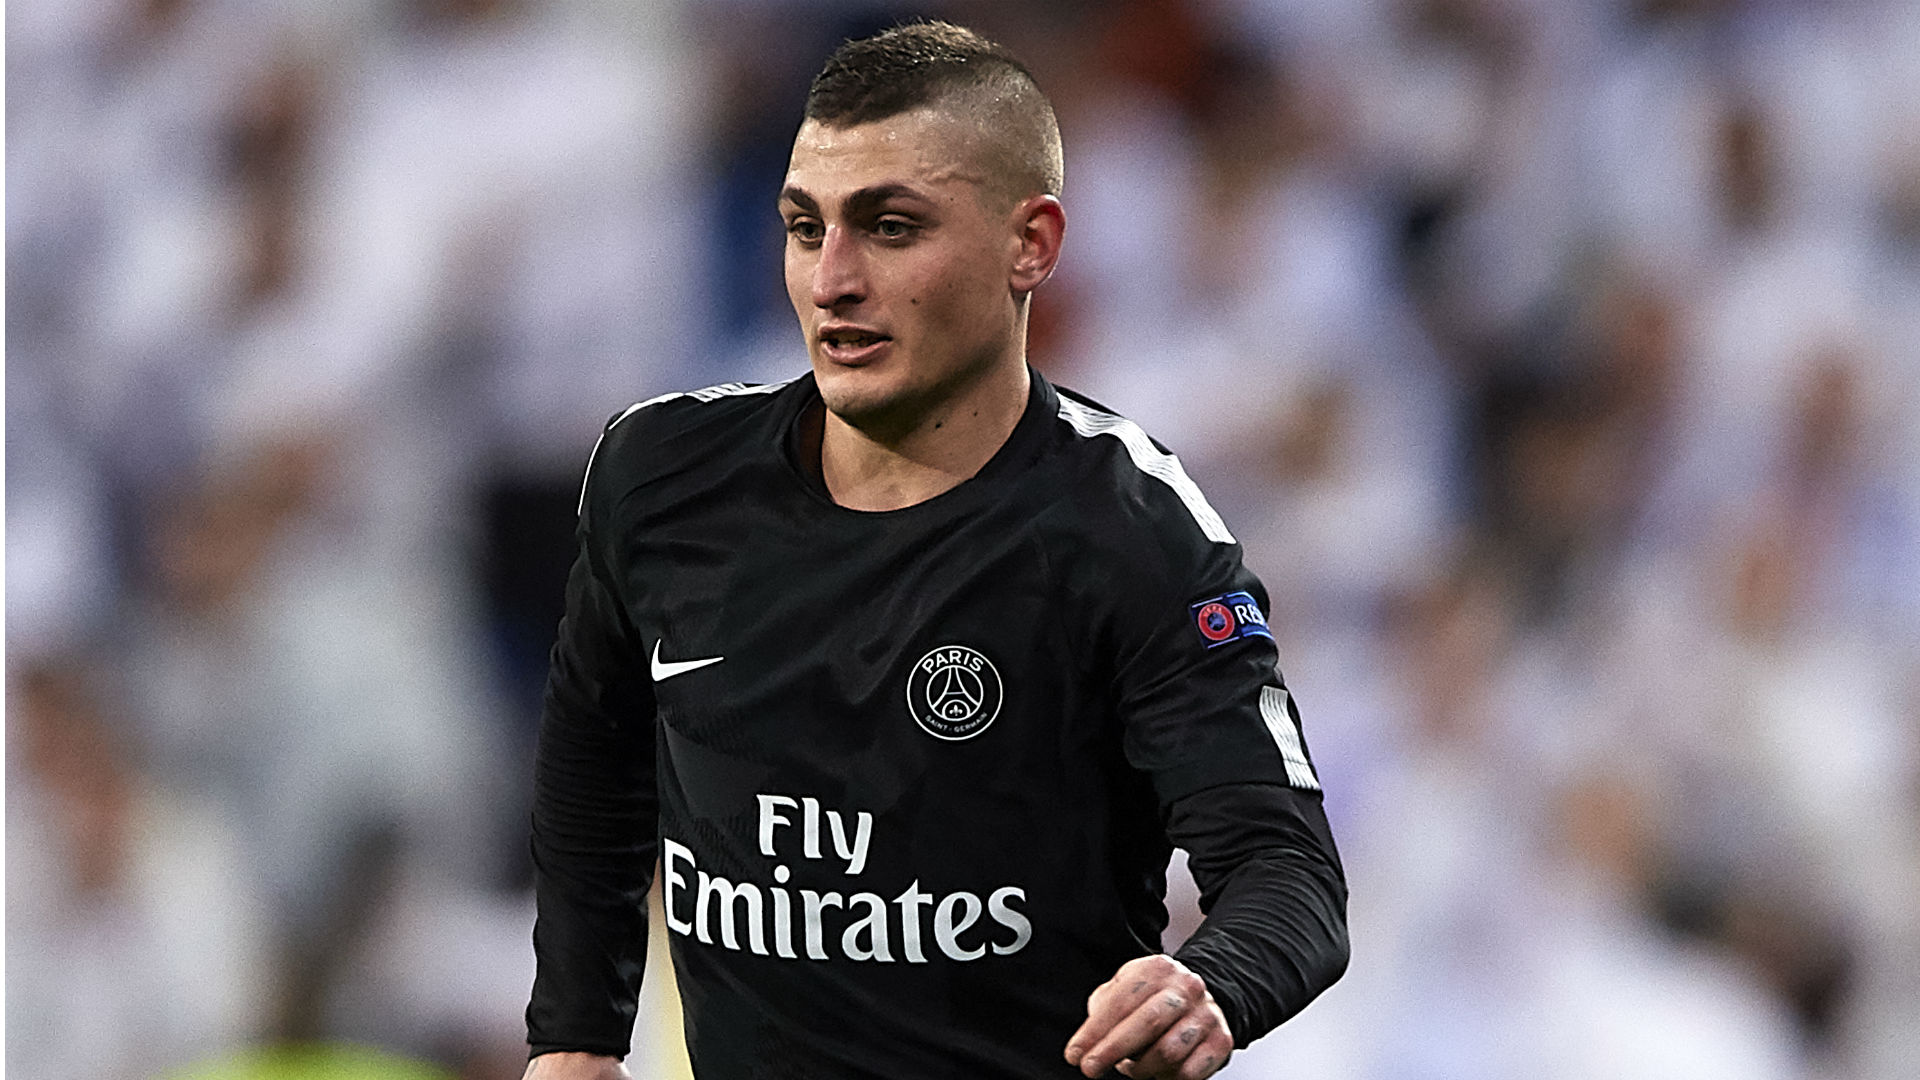 PSG midfielder lays into club after Real Madrid defeat